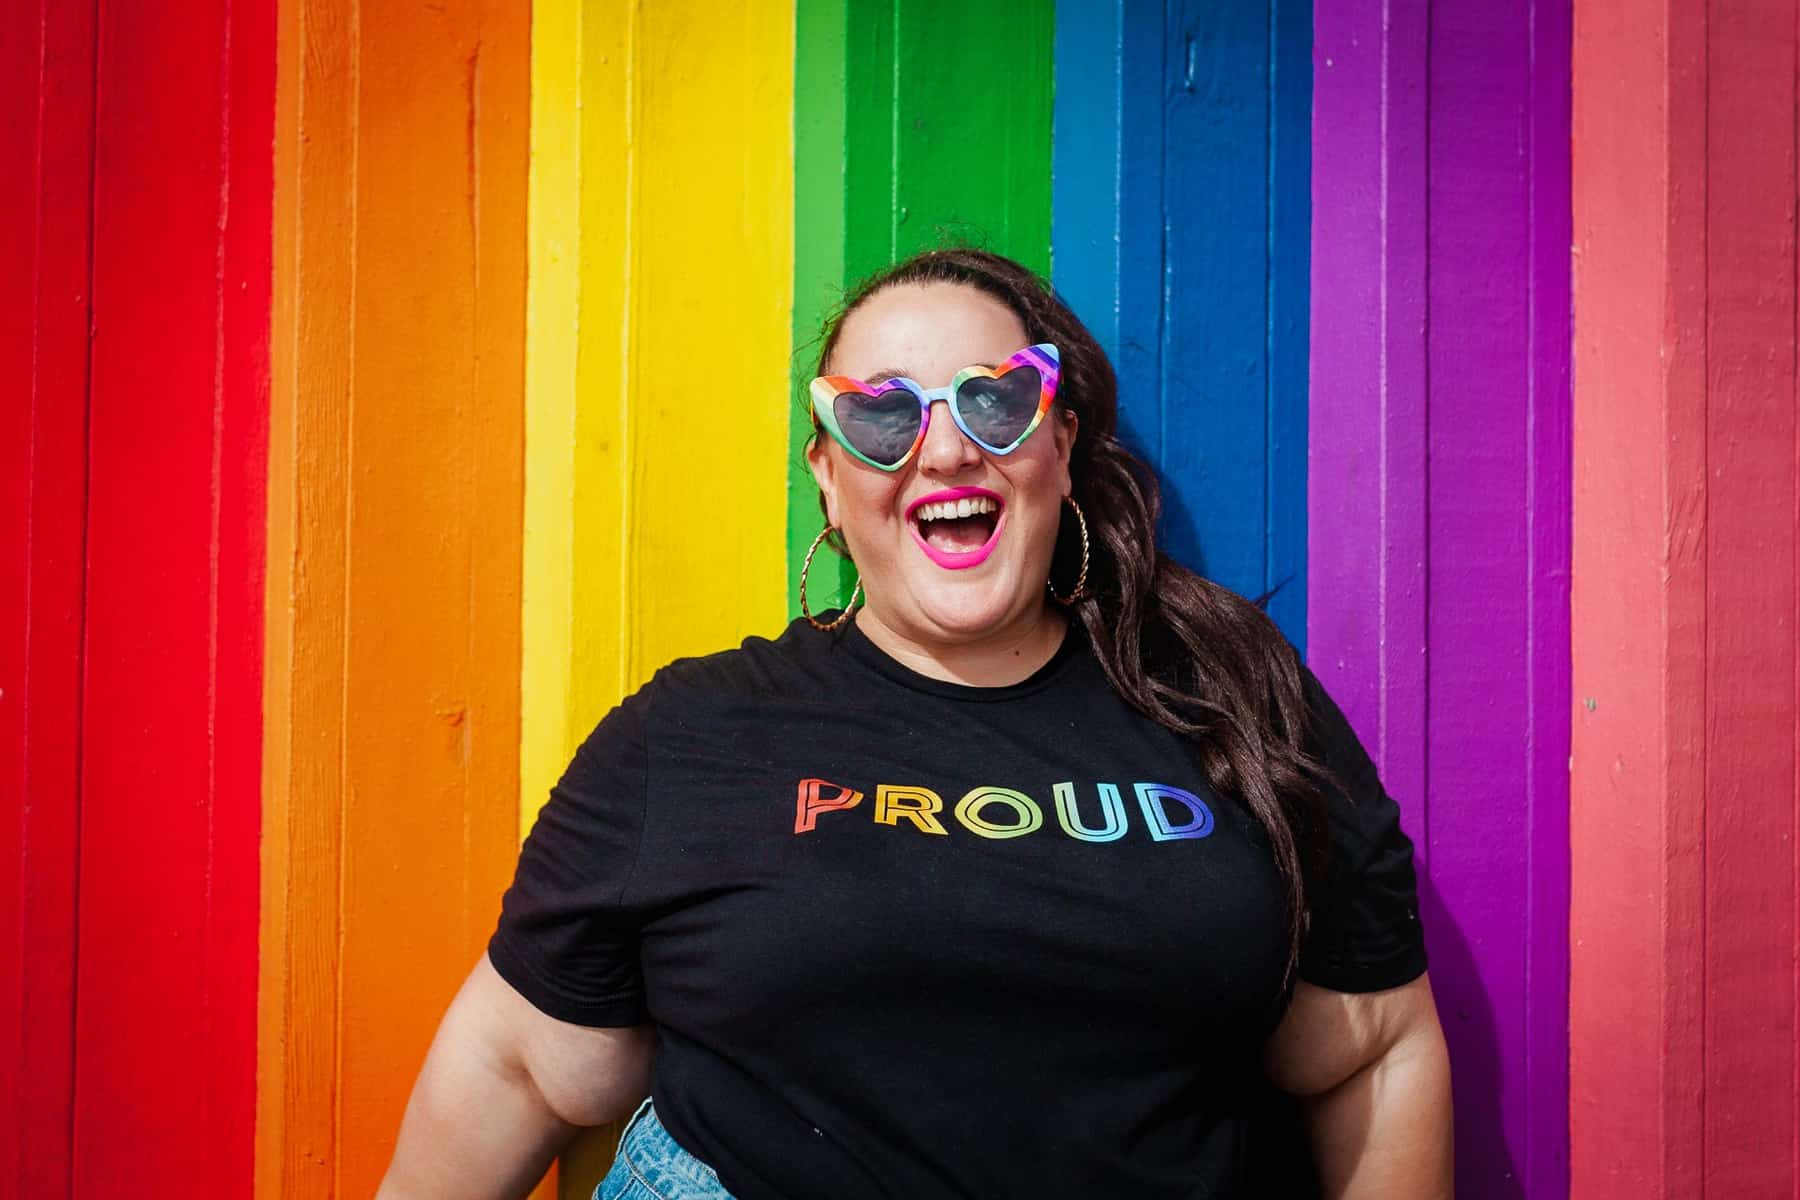 Be Proud Queer woman lesbian photographer